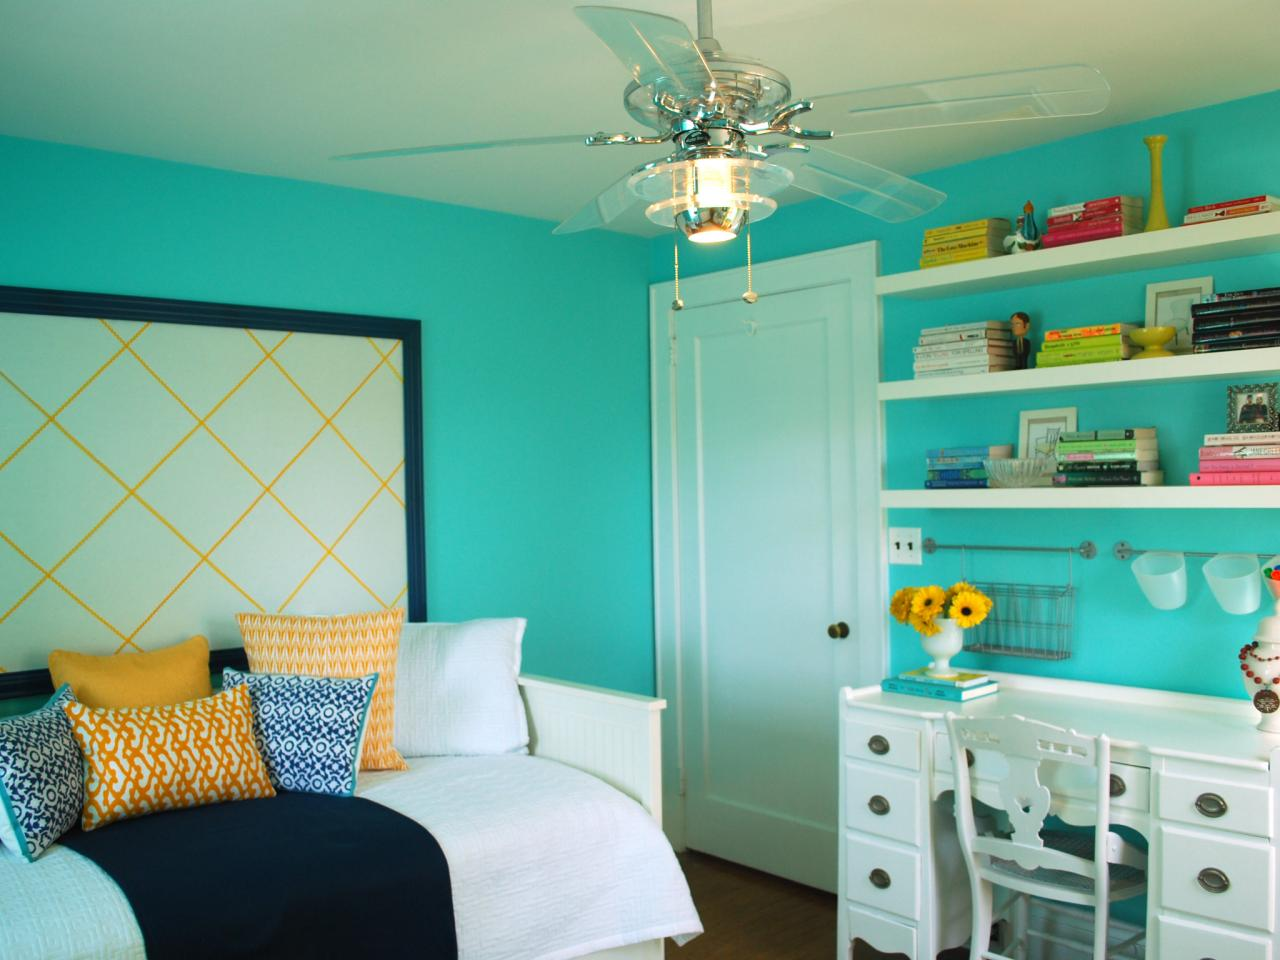 What Color To Paint A Room great colors to paint a bedroom: pictures, options & ideas | hgtv